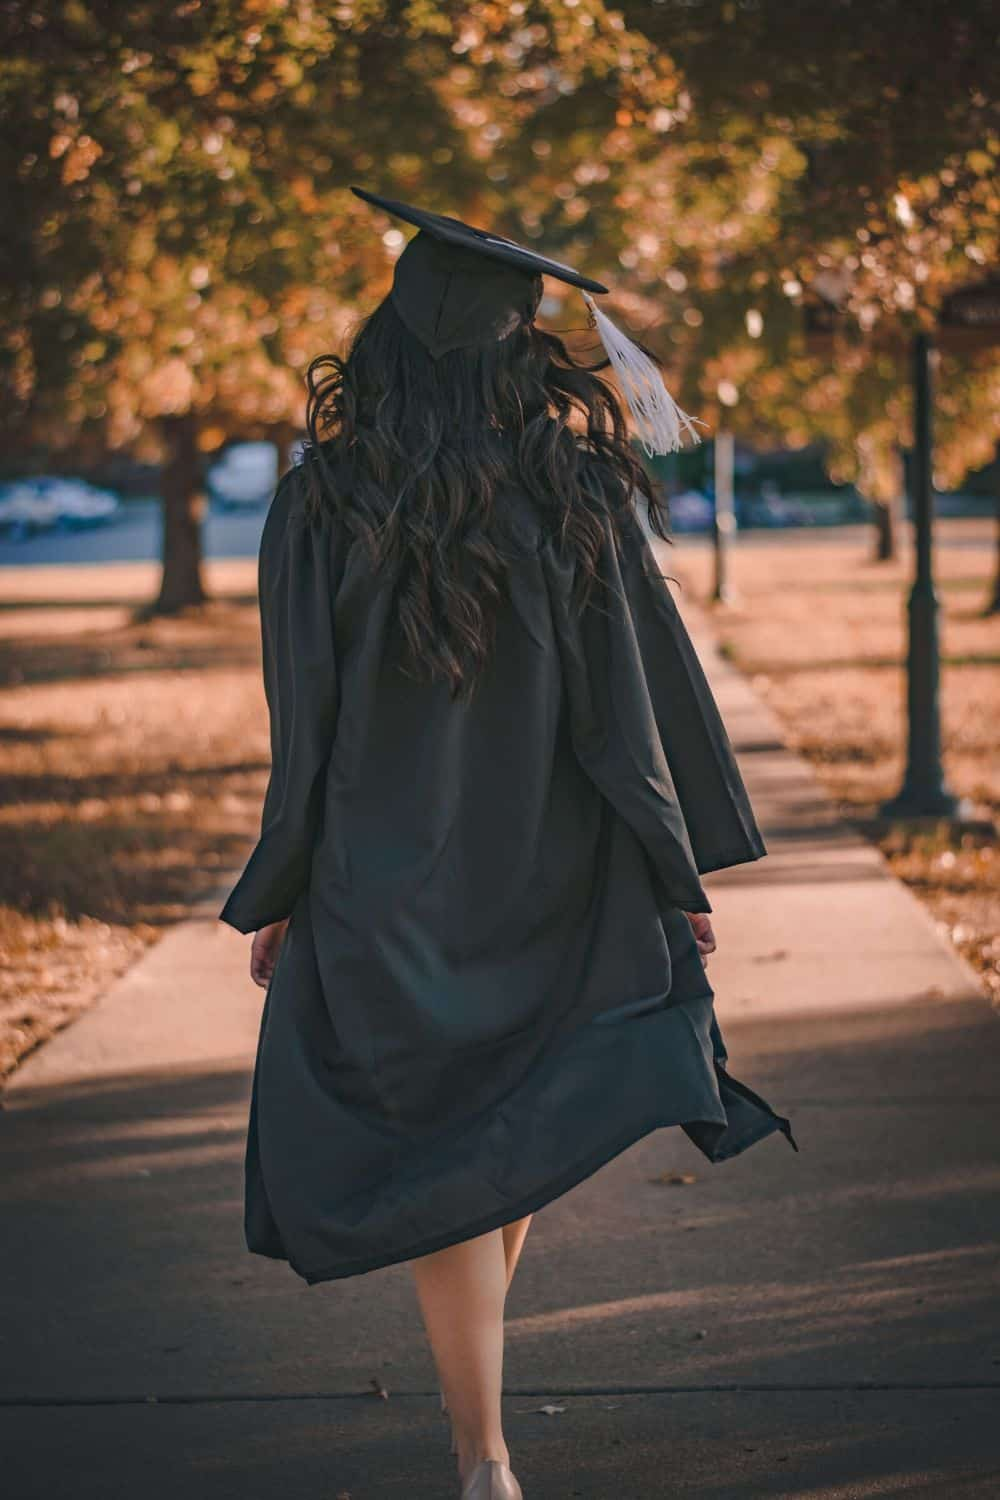 It's a mixture of emotions for everyone when your child is headed off to college. Here are tips on How To Prepare Yourself When A Child Leaves for College.